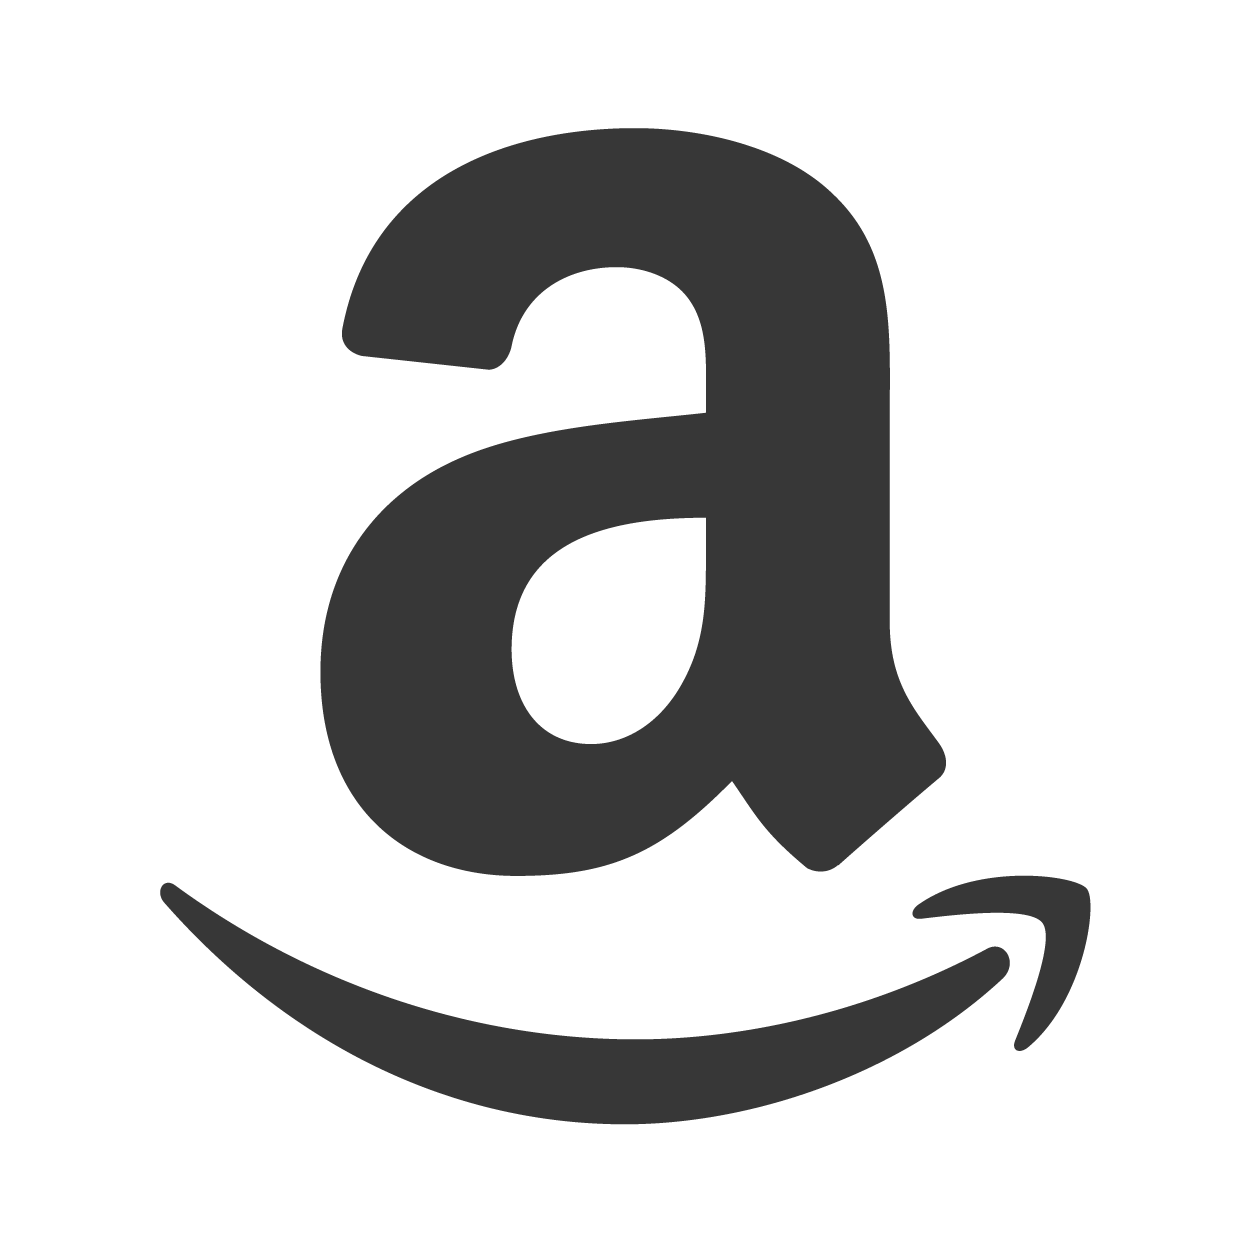 AMAZON-grey.png